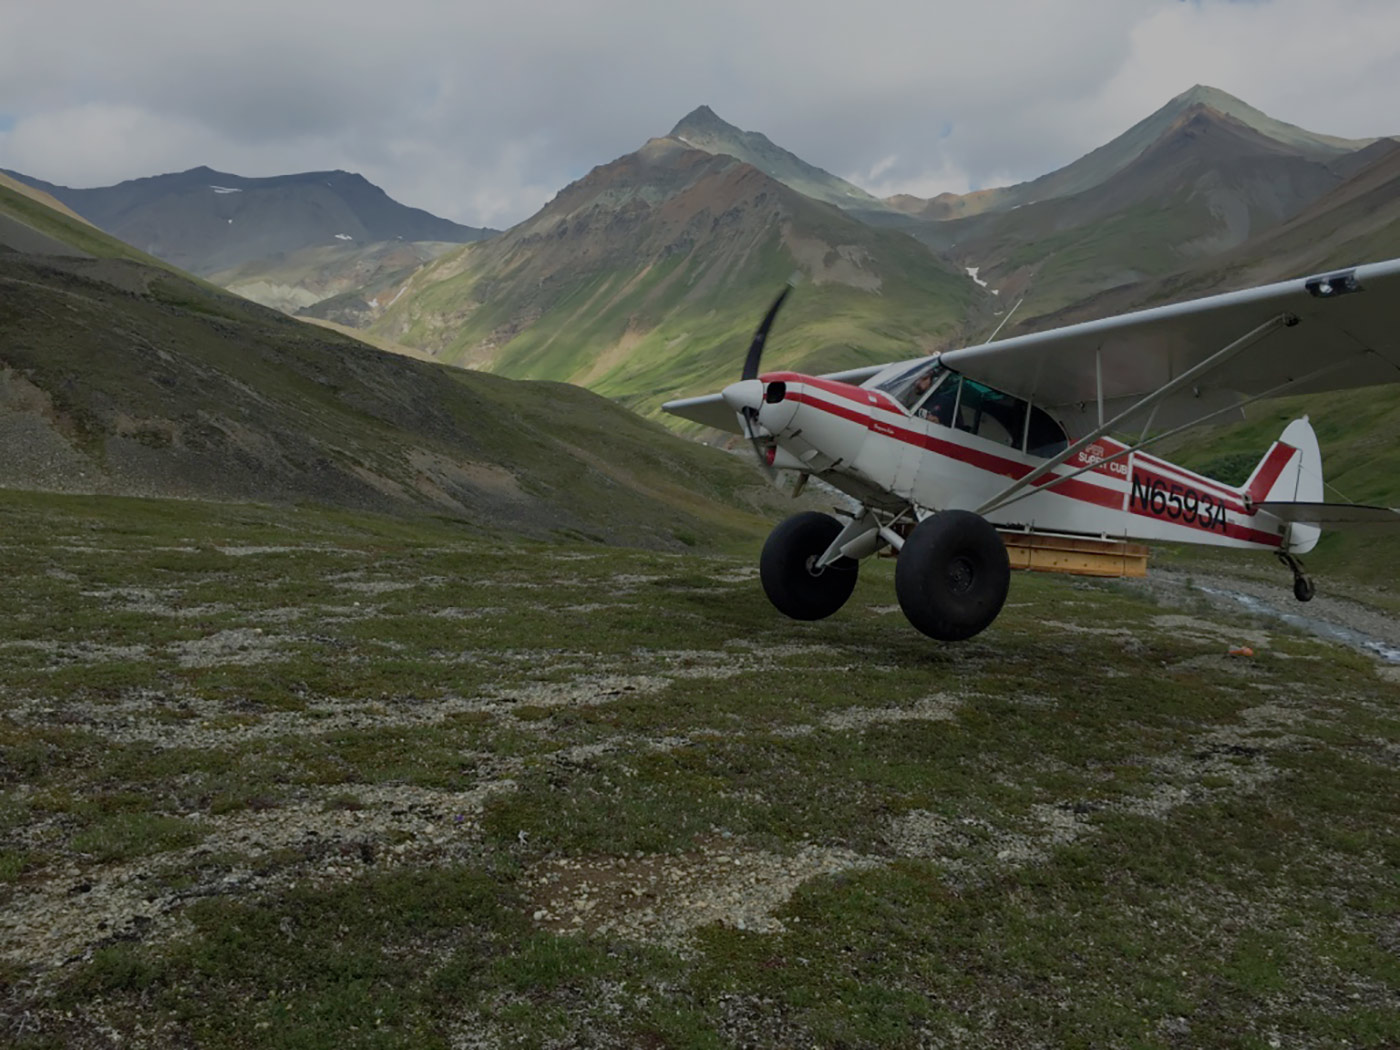 Alaska self-guided hunting plane